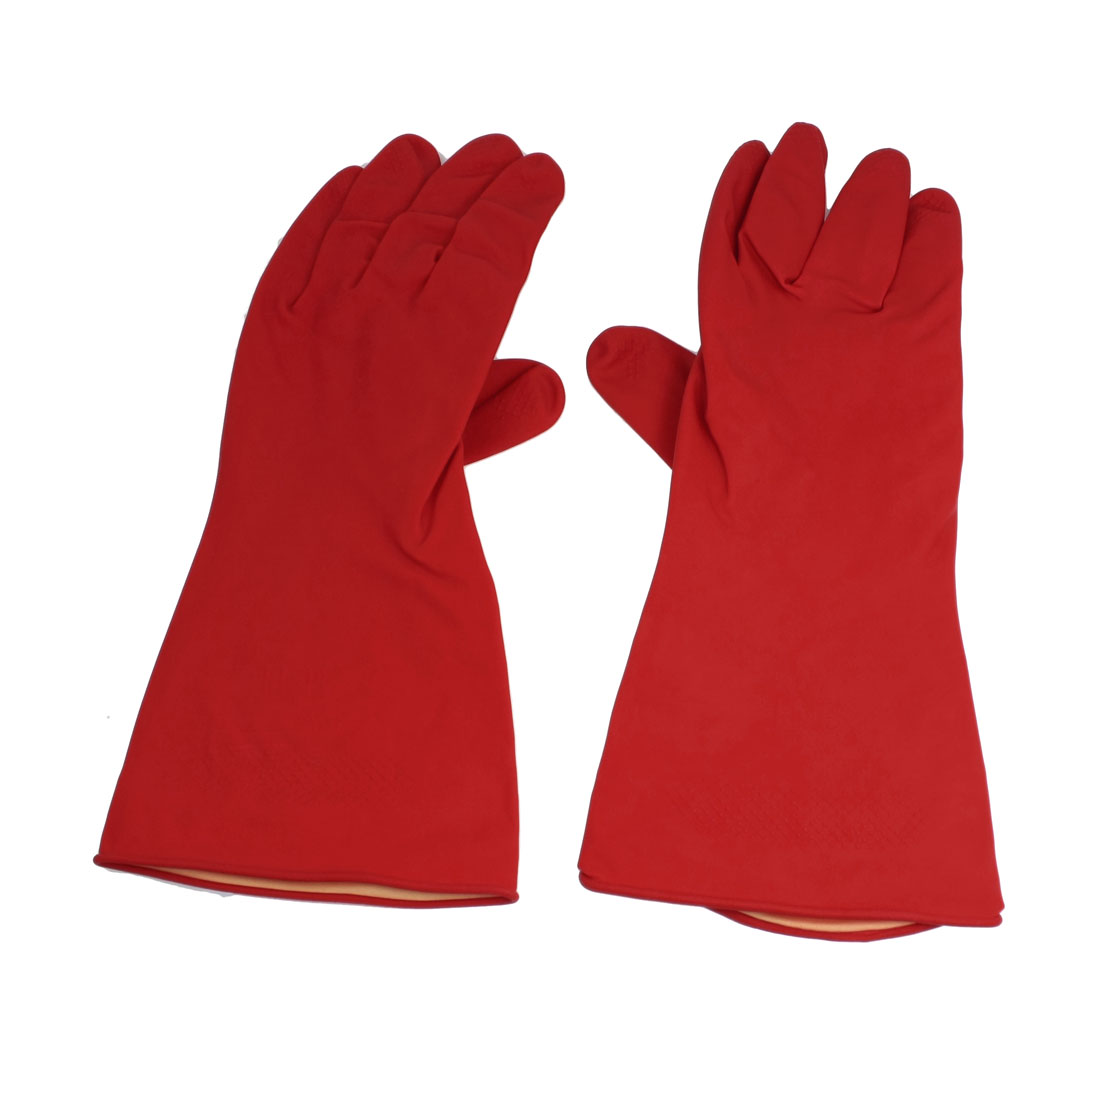 "Household Latex Rubber Pair Assistant Nonslip Clean Wash Gloves Red 11.8"" L"